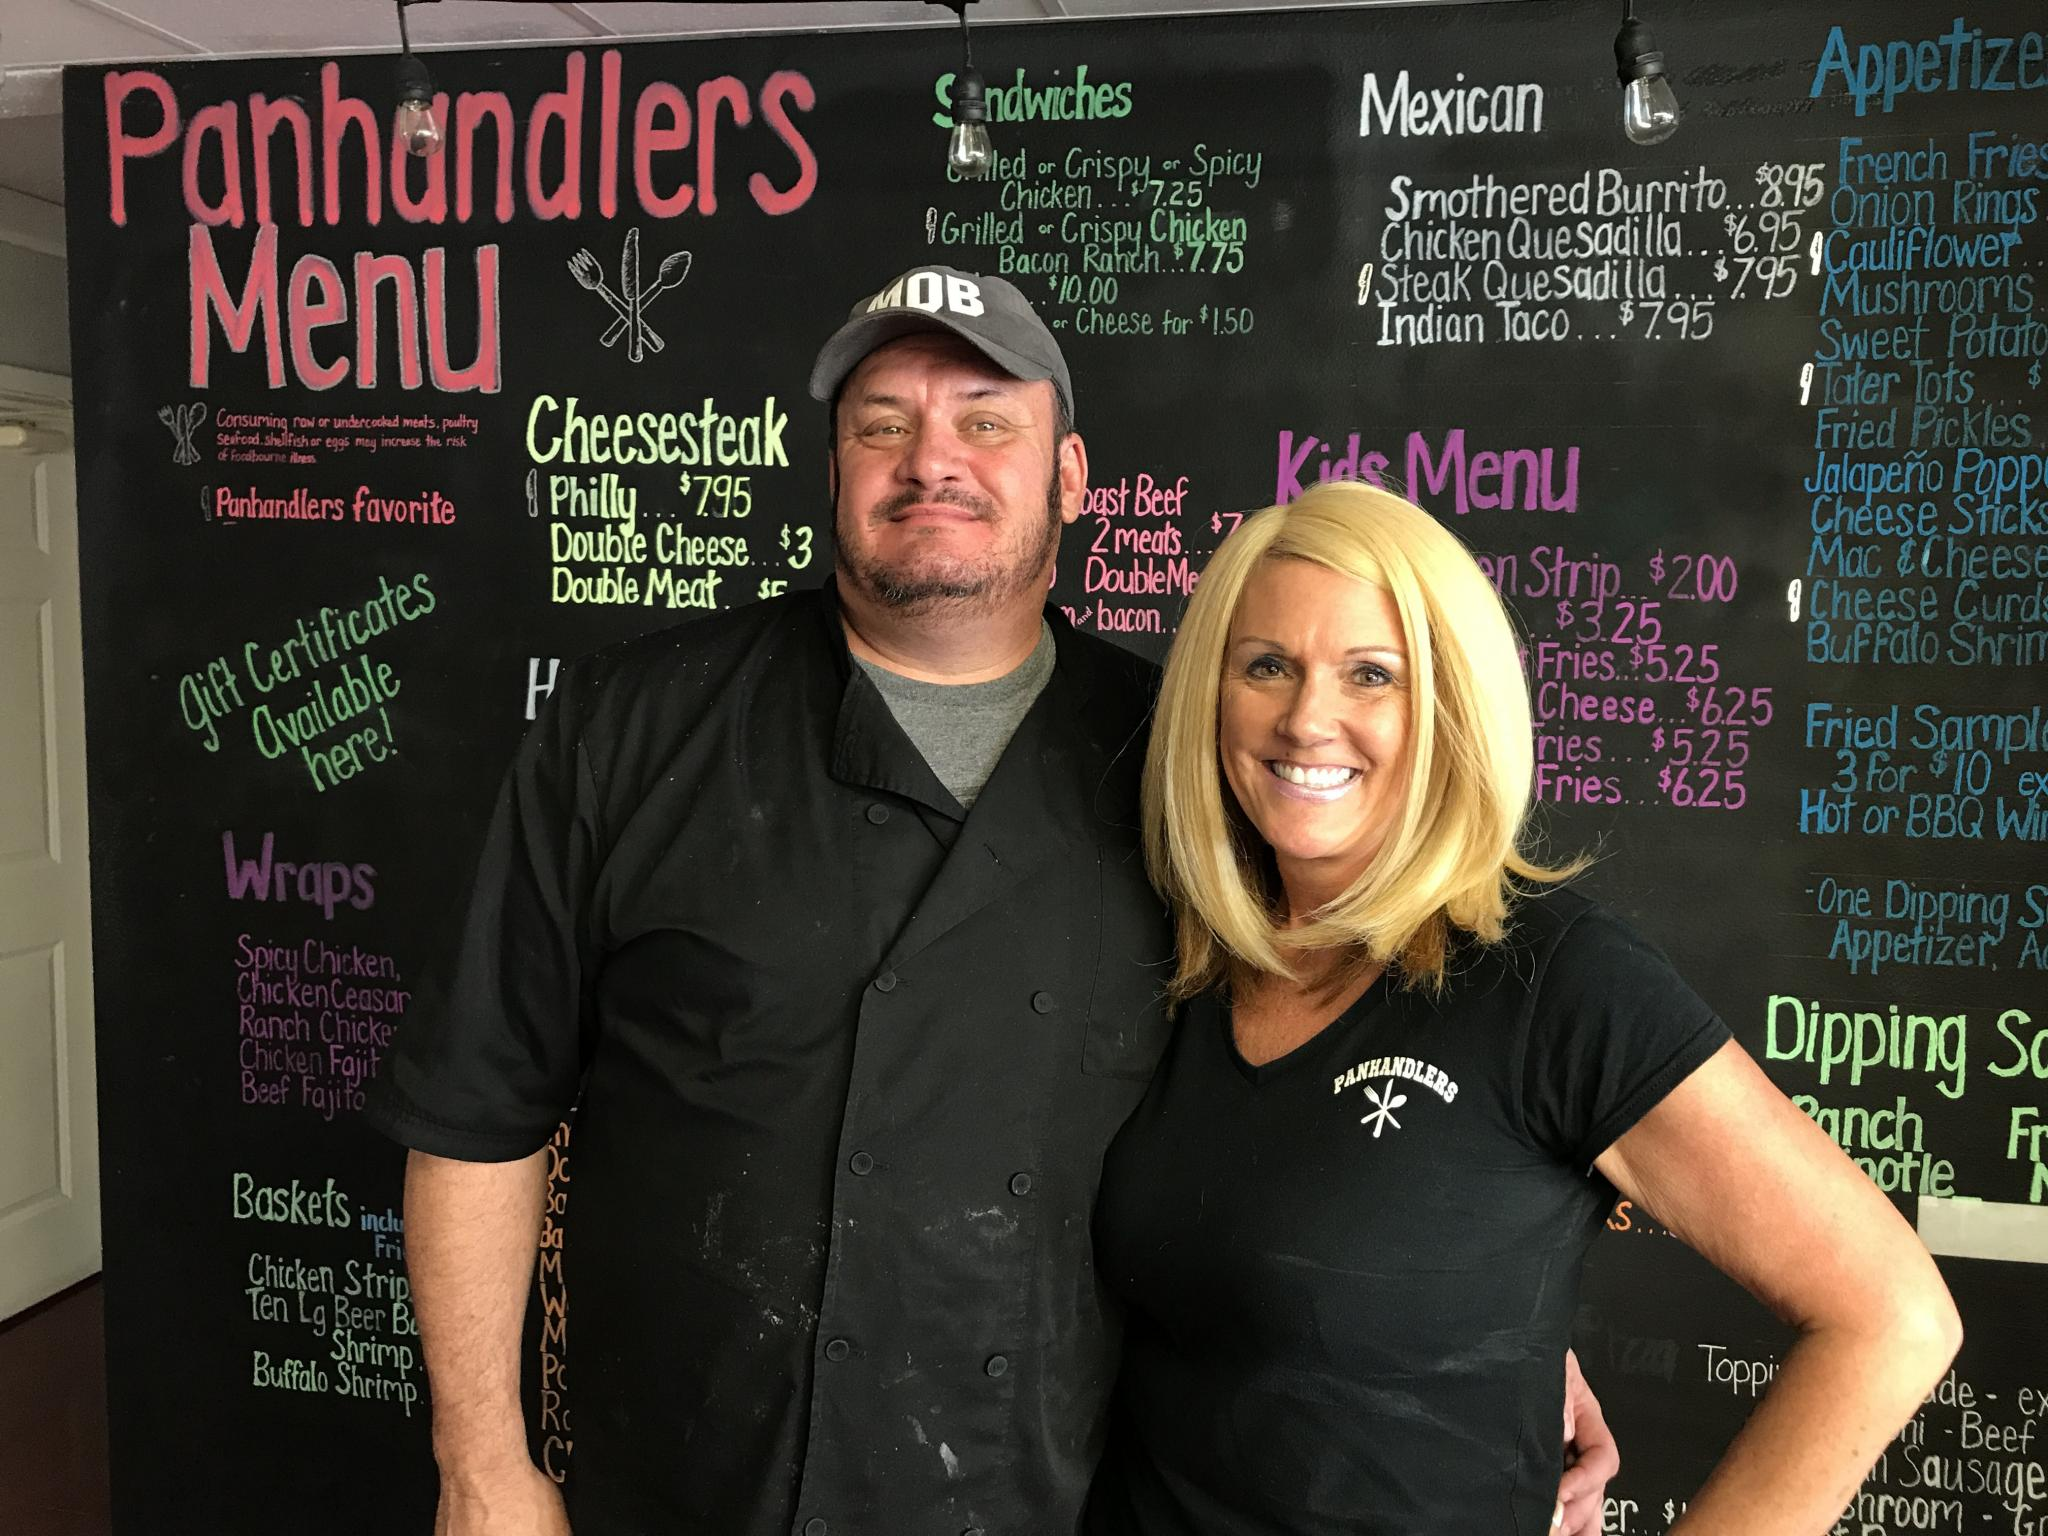 NLT | Becky Uehling<strong>John and Lori Thomason stand in front of their menu board at their restaurant Panhandlers in Oshkosh, Neb.</strong>